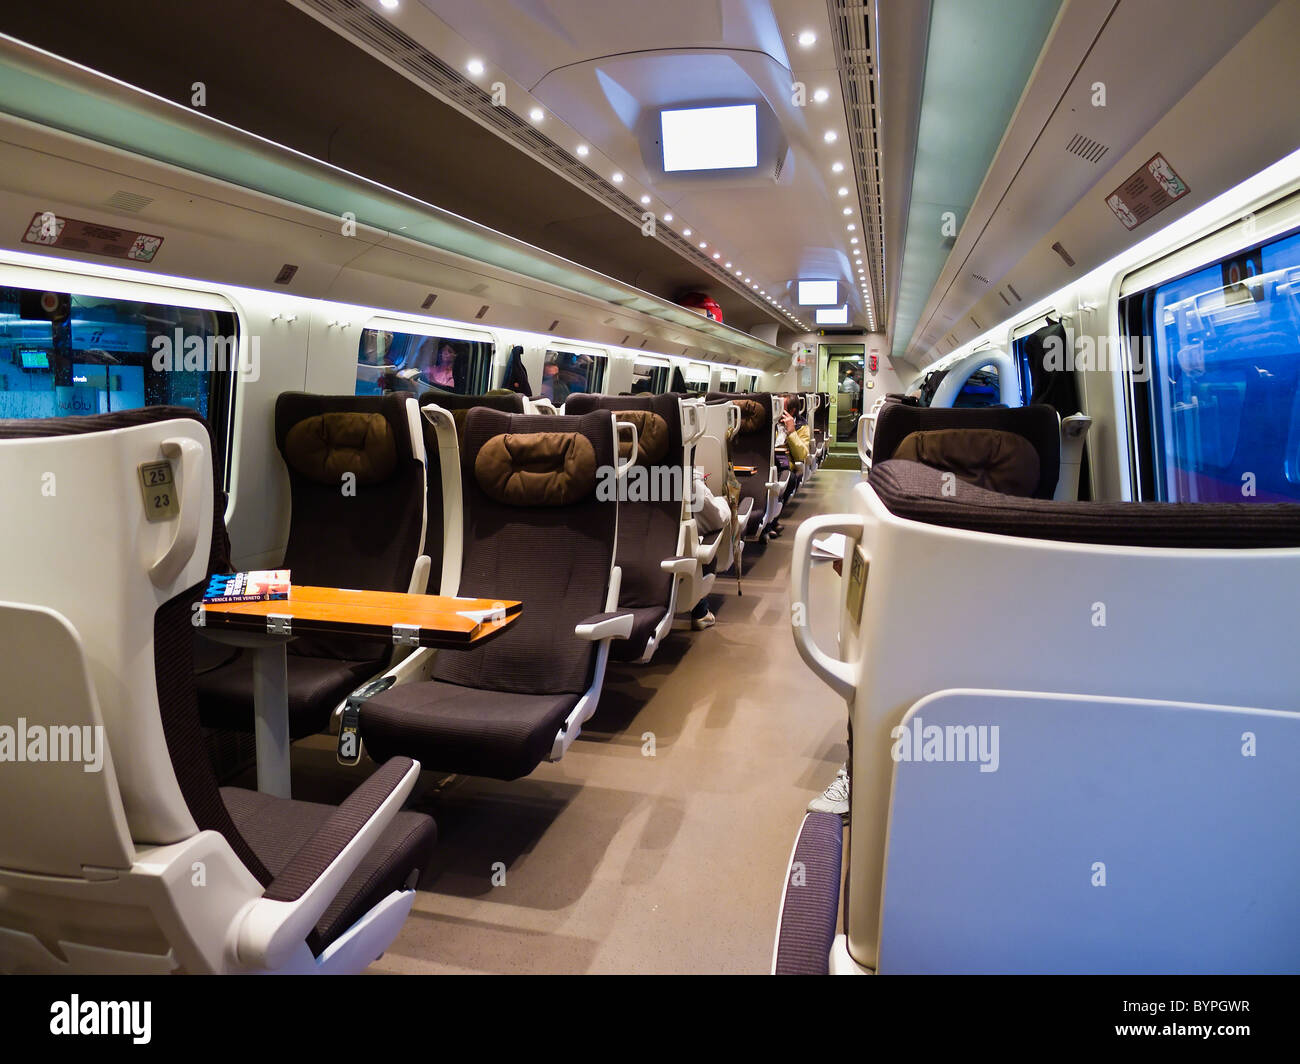 Interior of a Eurostar Train First Class Cabin, Italy - Stock Image